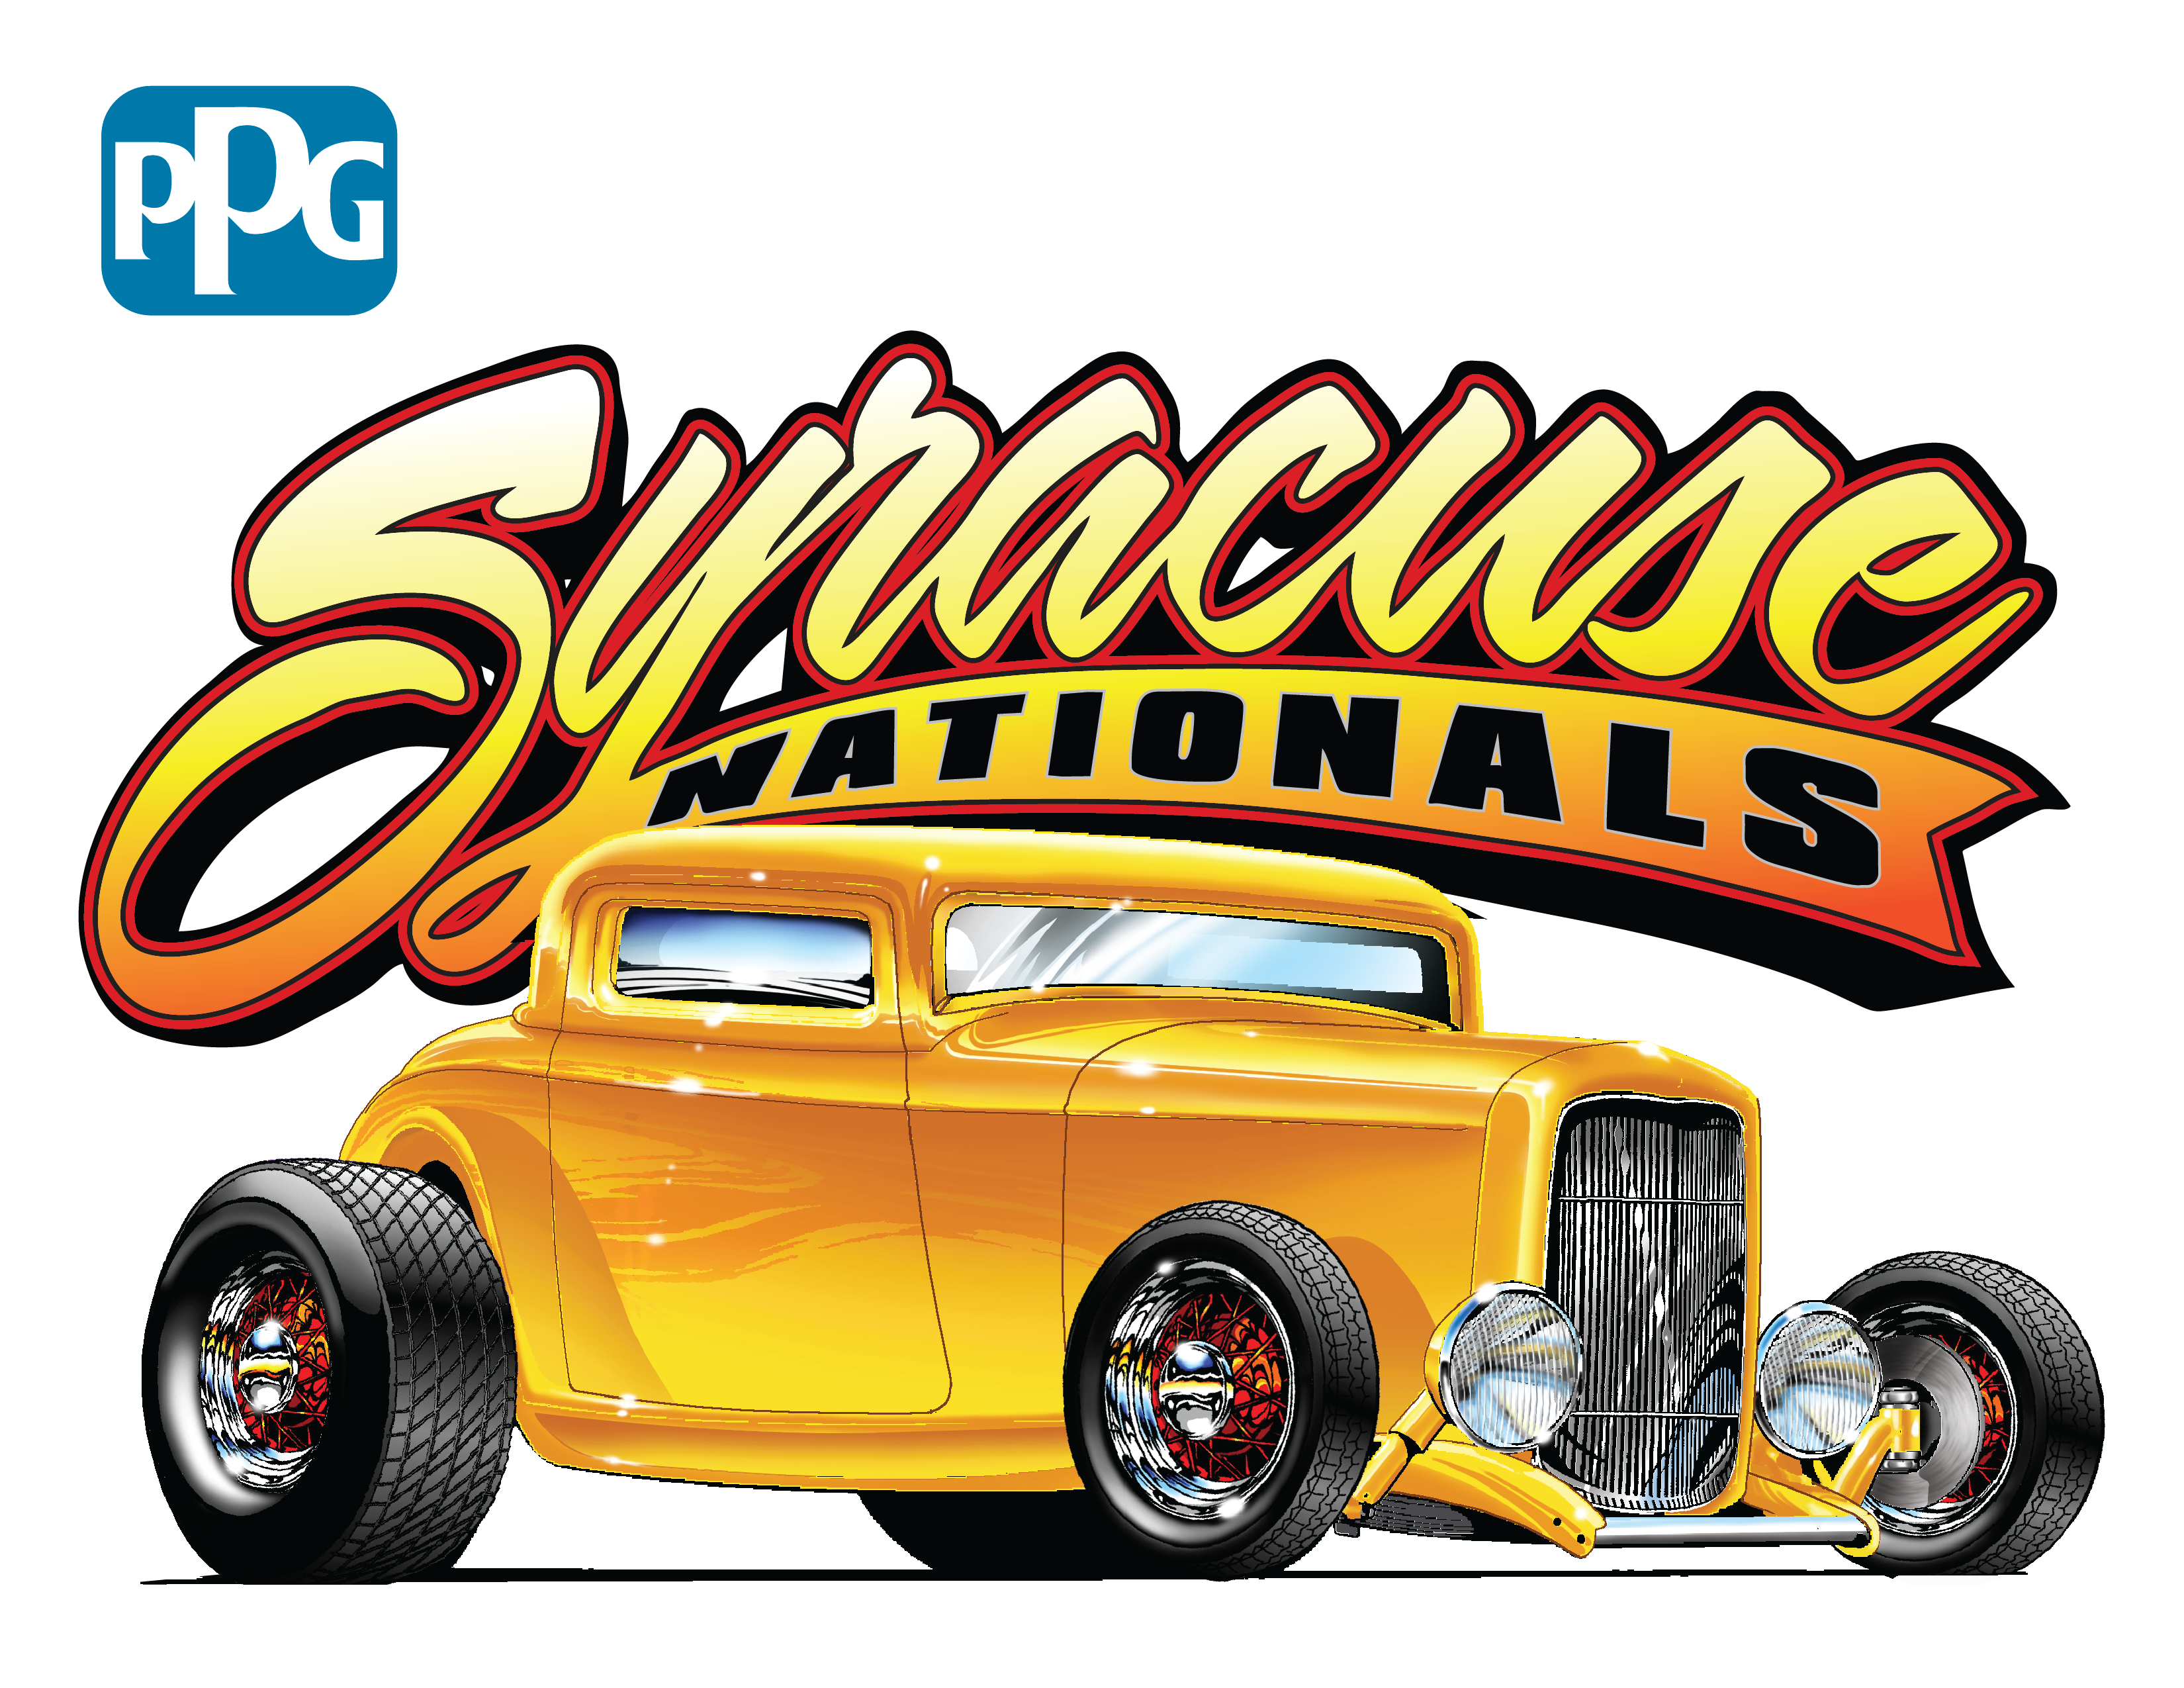 Antique car show clipart banner library download Syracuse Nationals banner library download